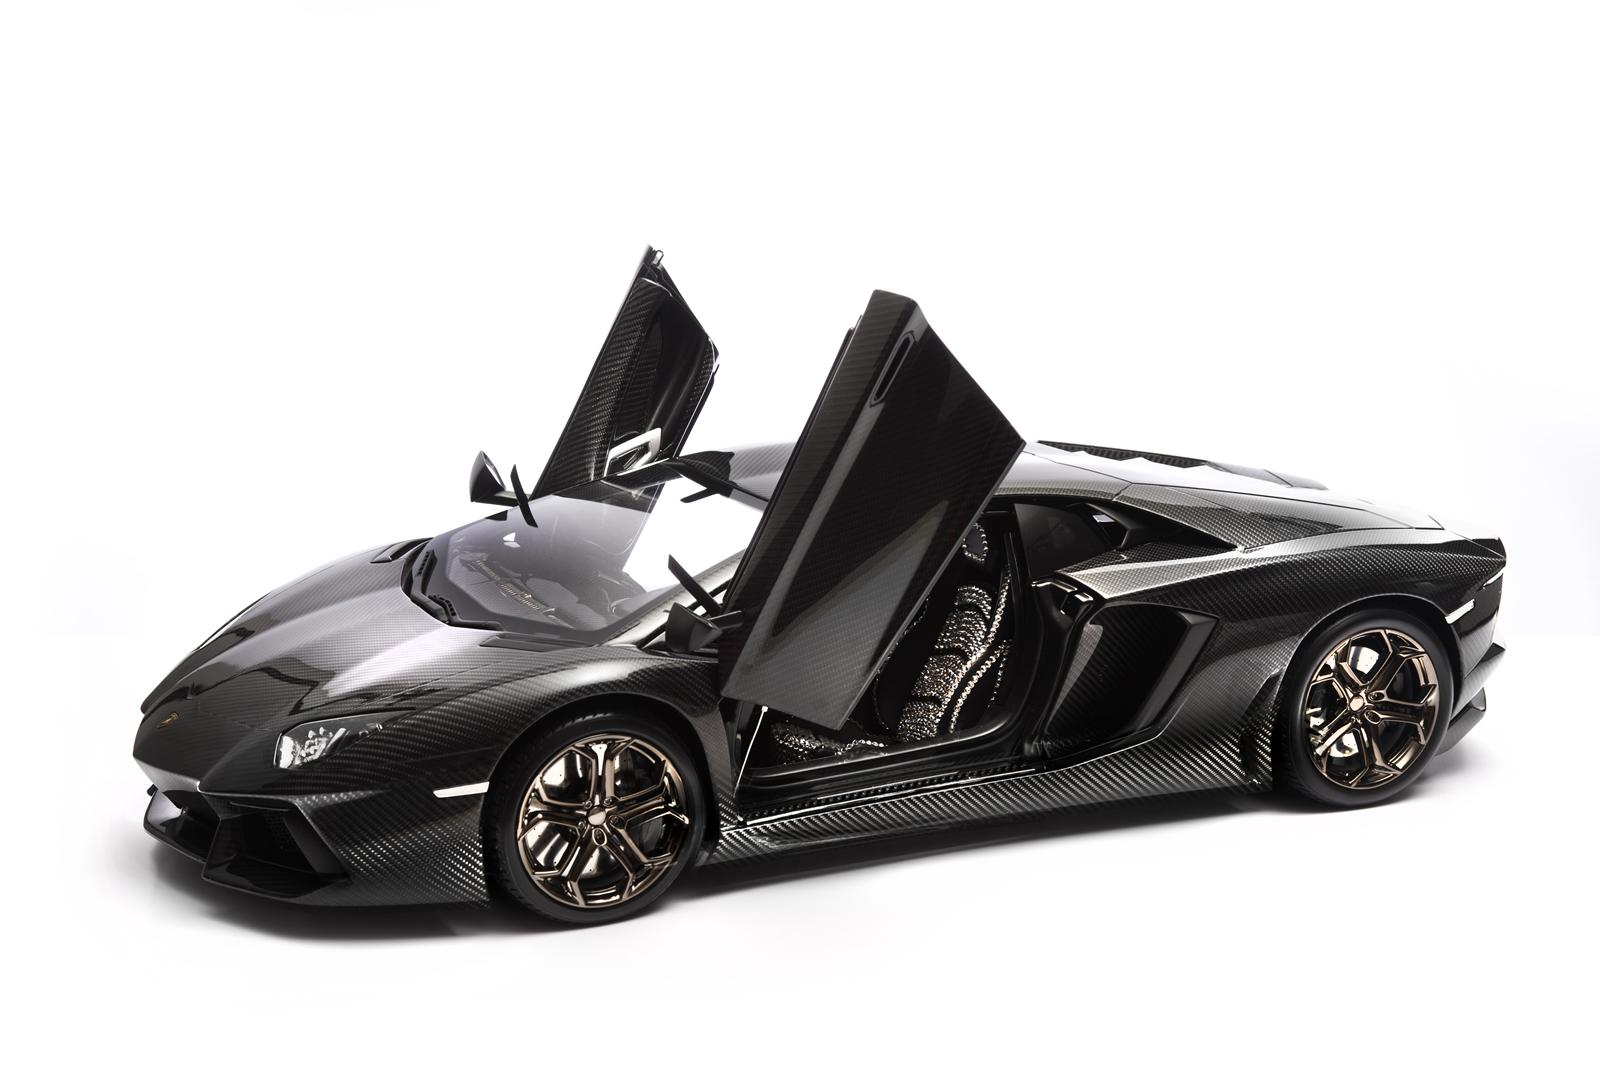 2012 Lamborghini Aventador LP700 4 3 2012 Lamborghini Aventador LP700 4 Car – A Technical Review